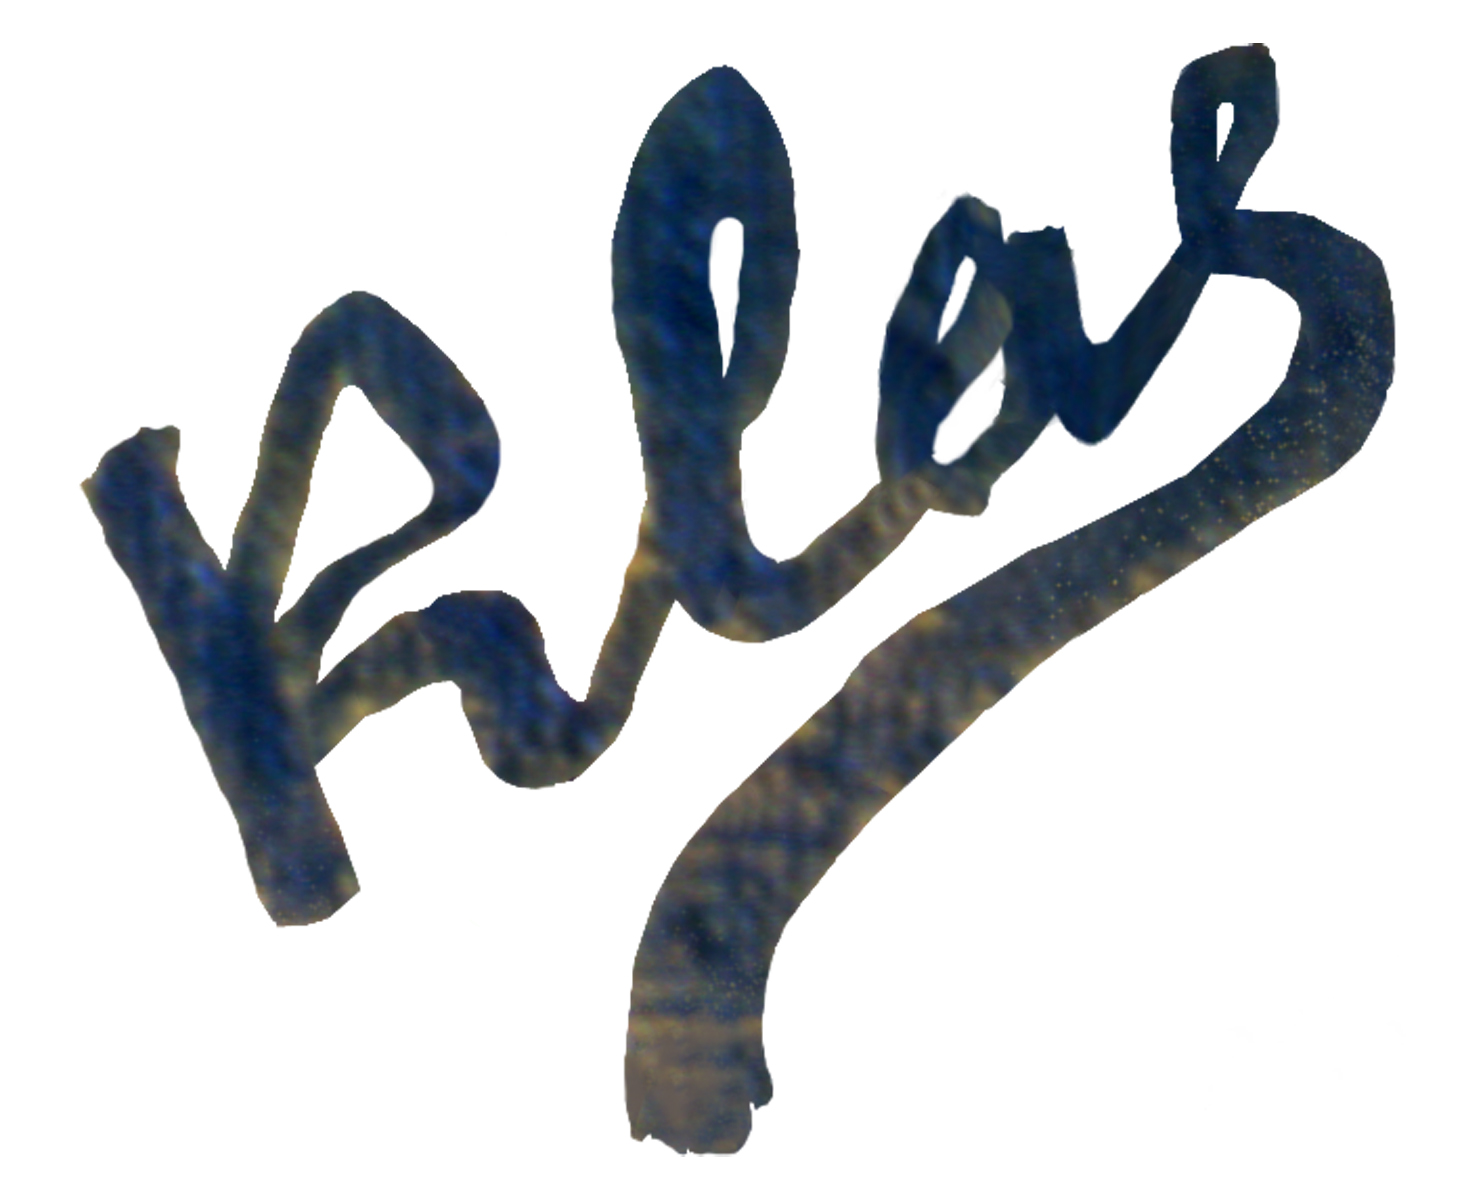 Alex Klas Signature